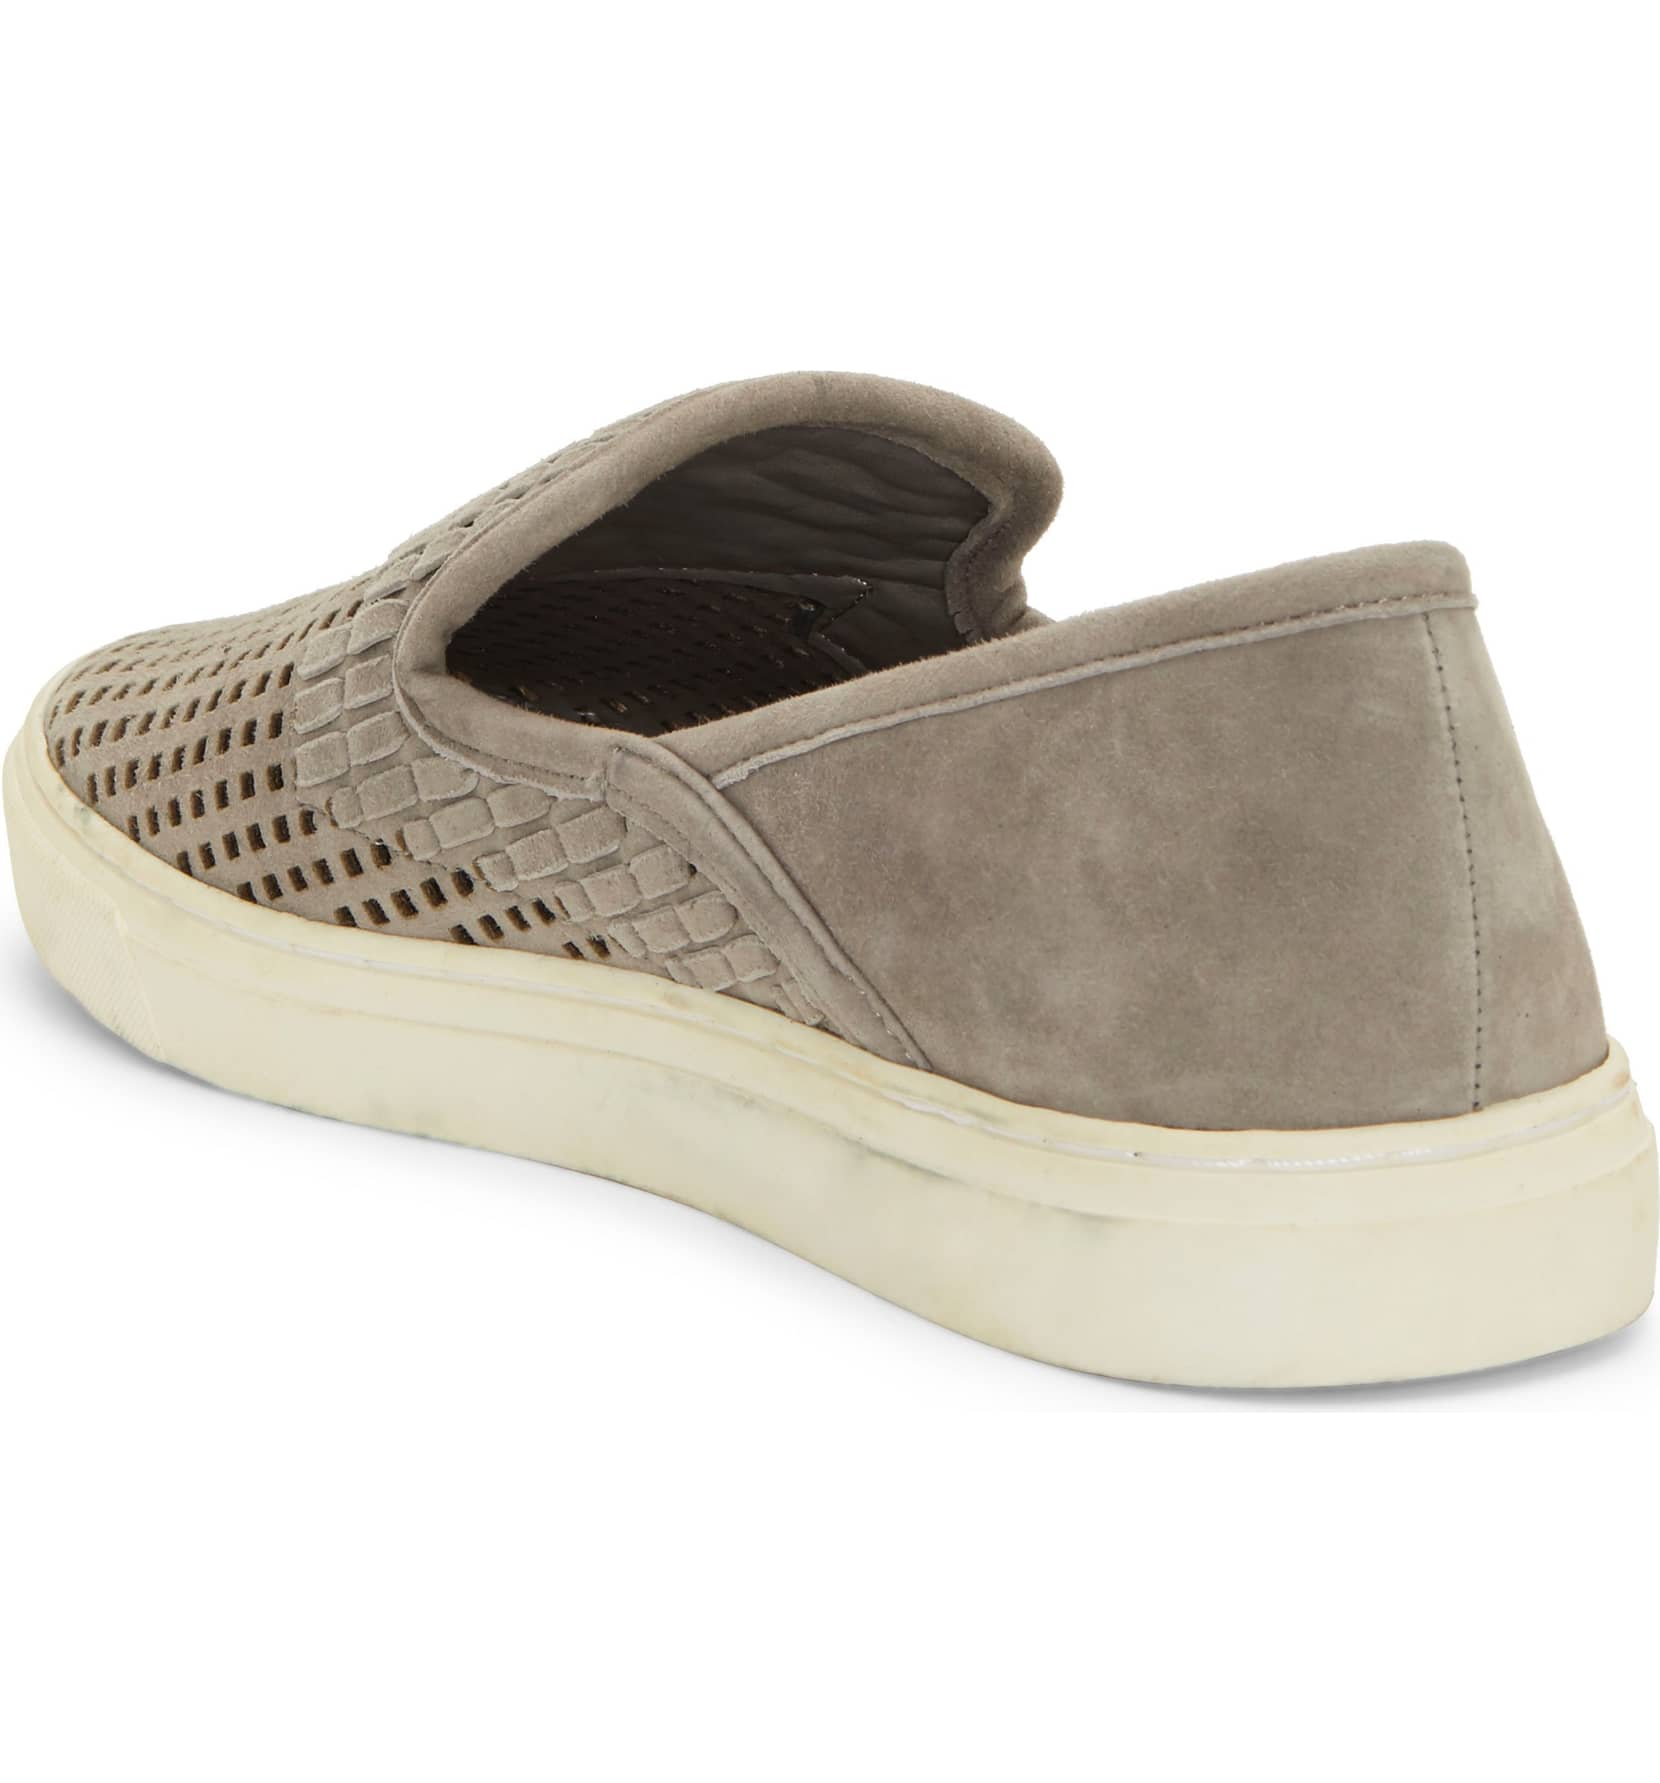 Vince-Camuto-Bristie-Storm-Grey-Leather-Woven-White-Sole-Slip-On-Sneakers thumbnail 33